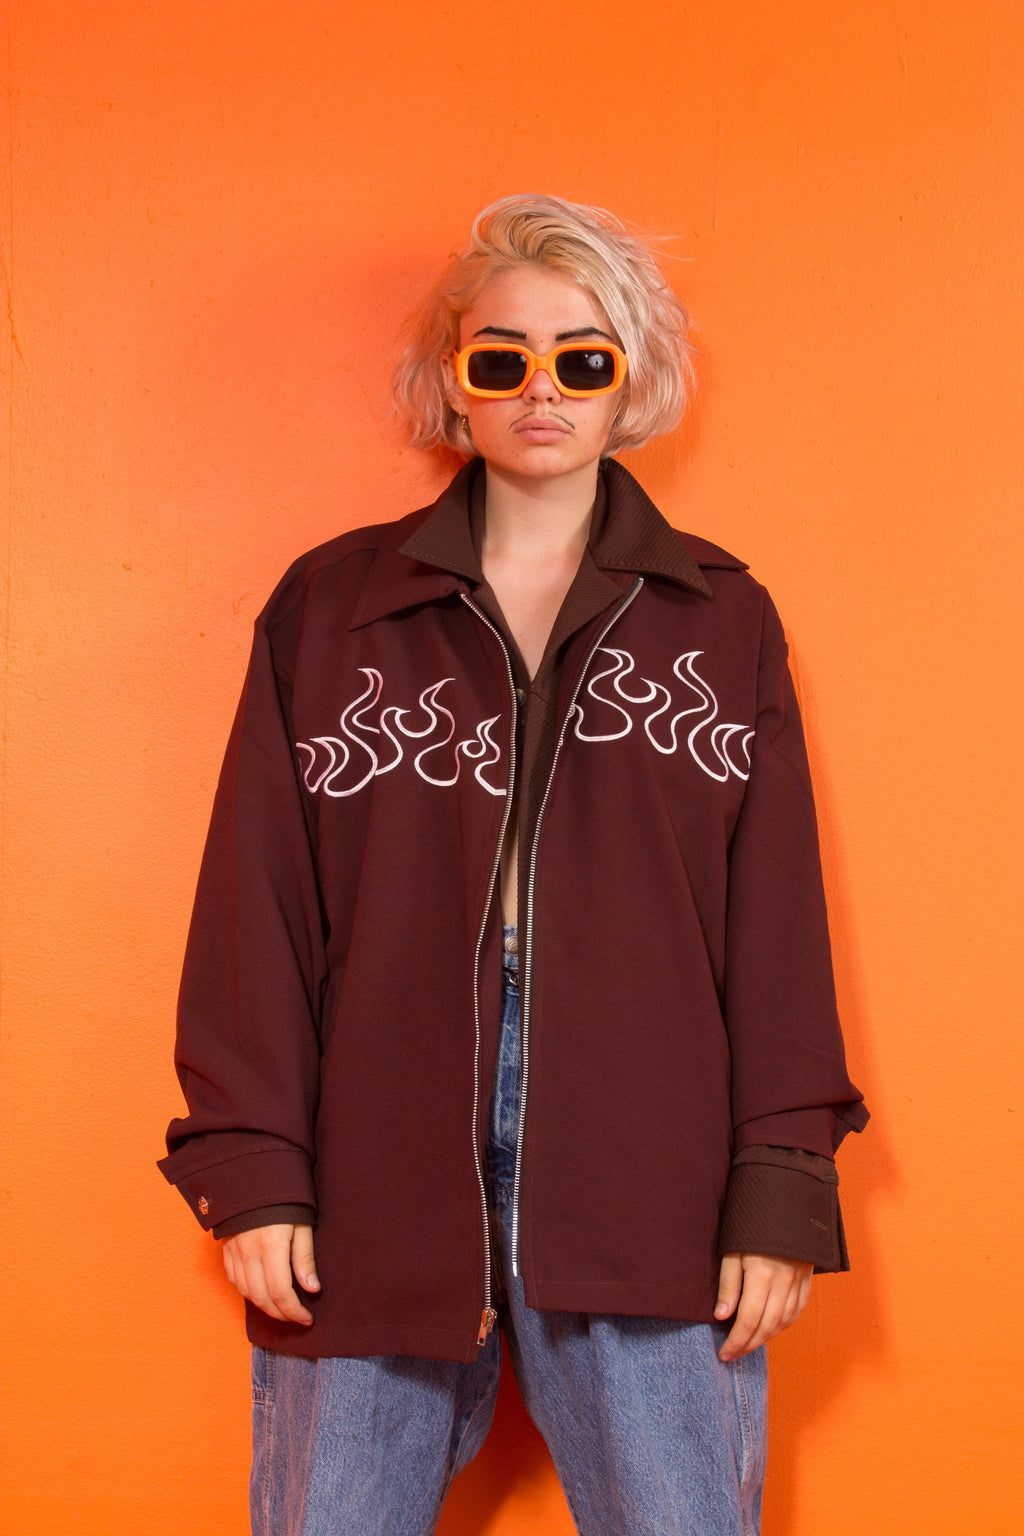 Johnny suede embroidered flame jacket